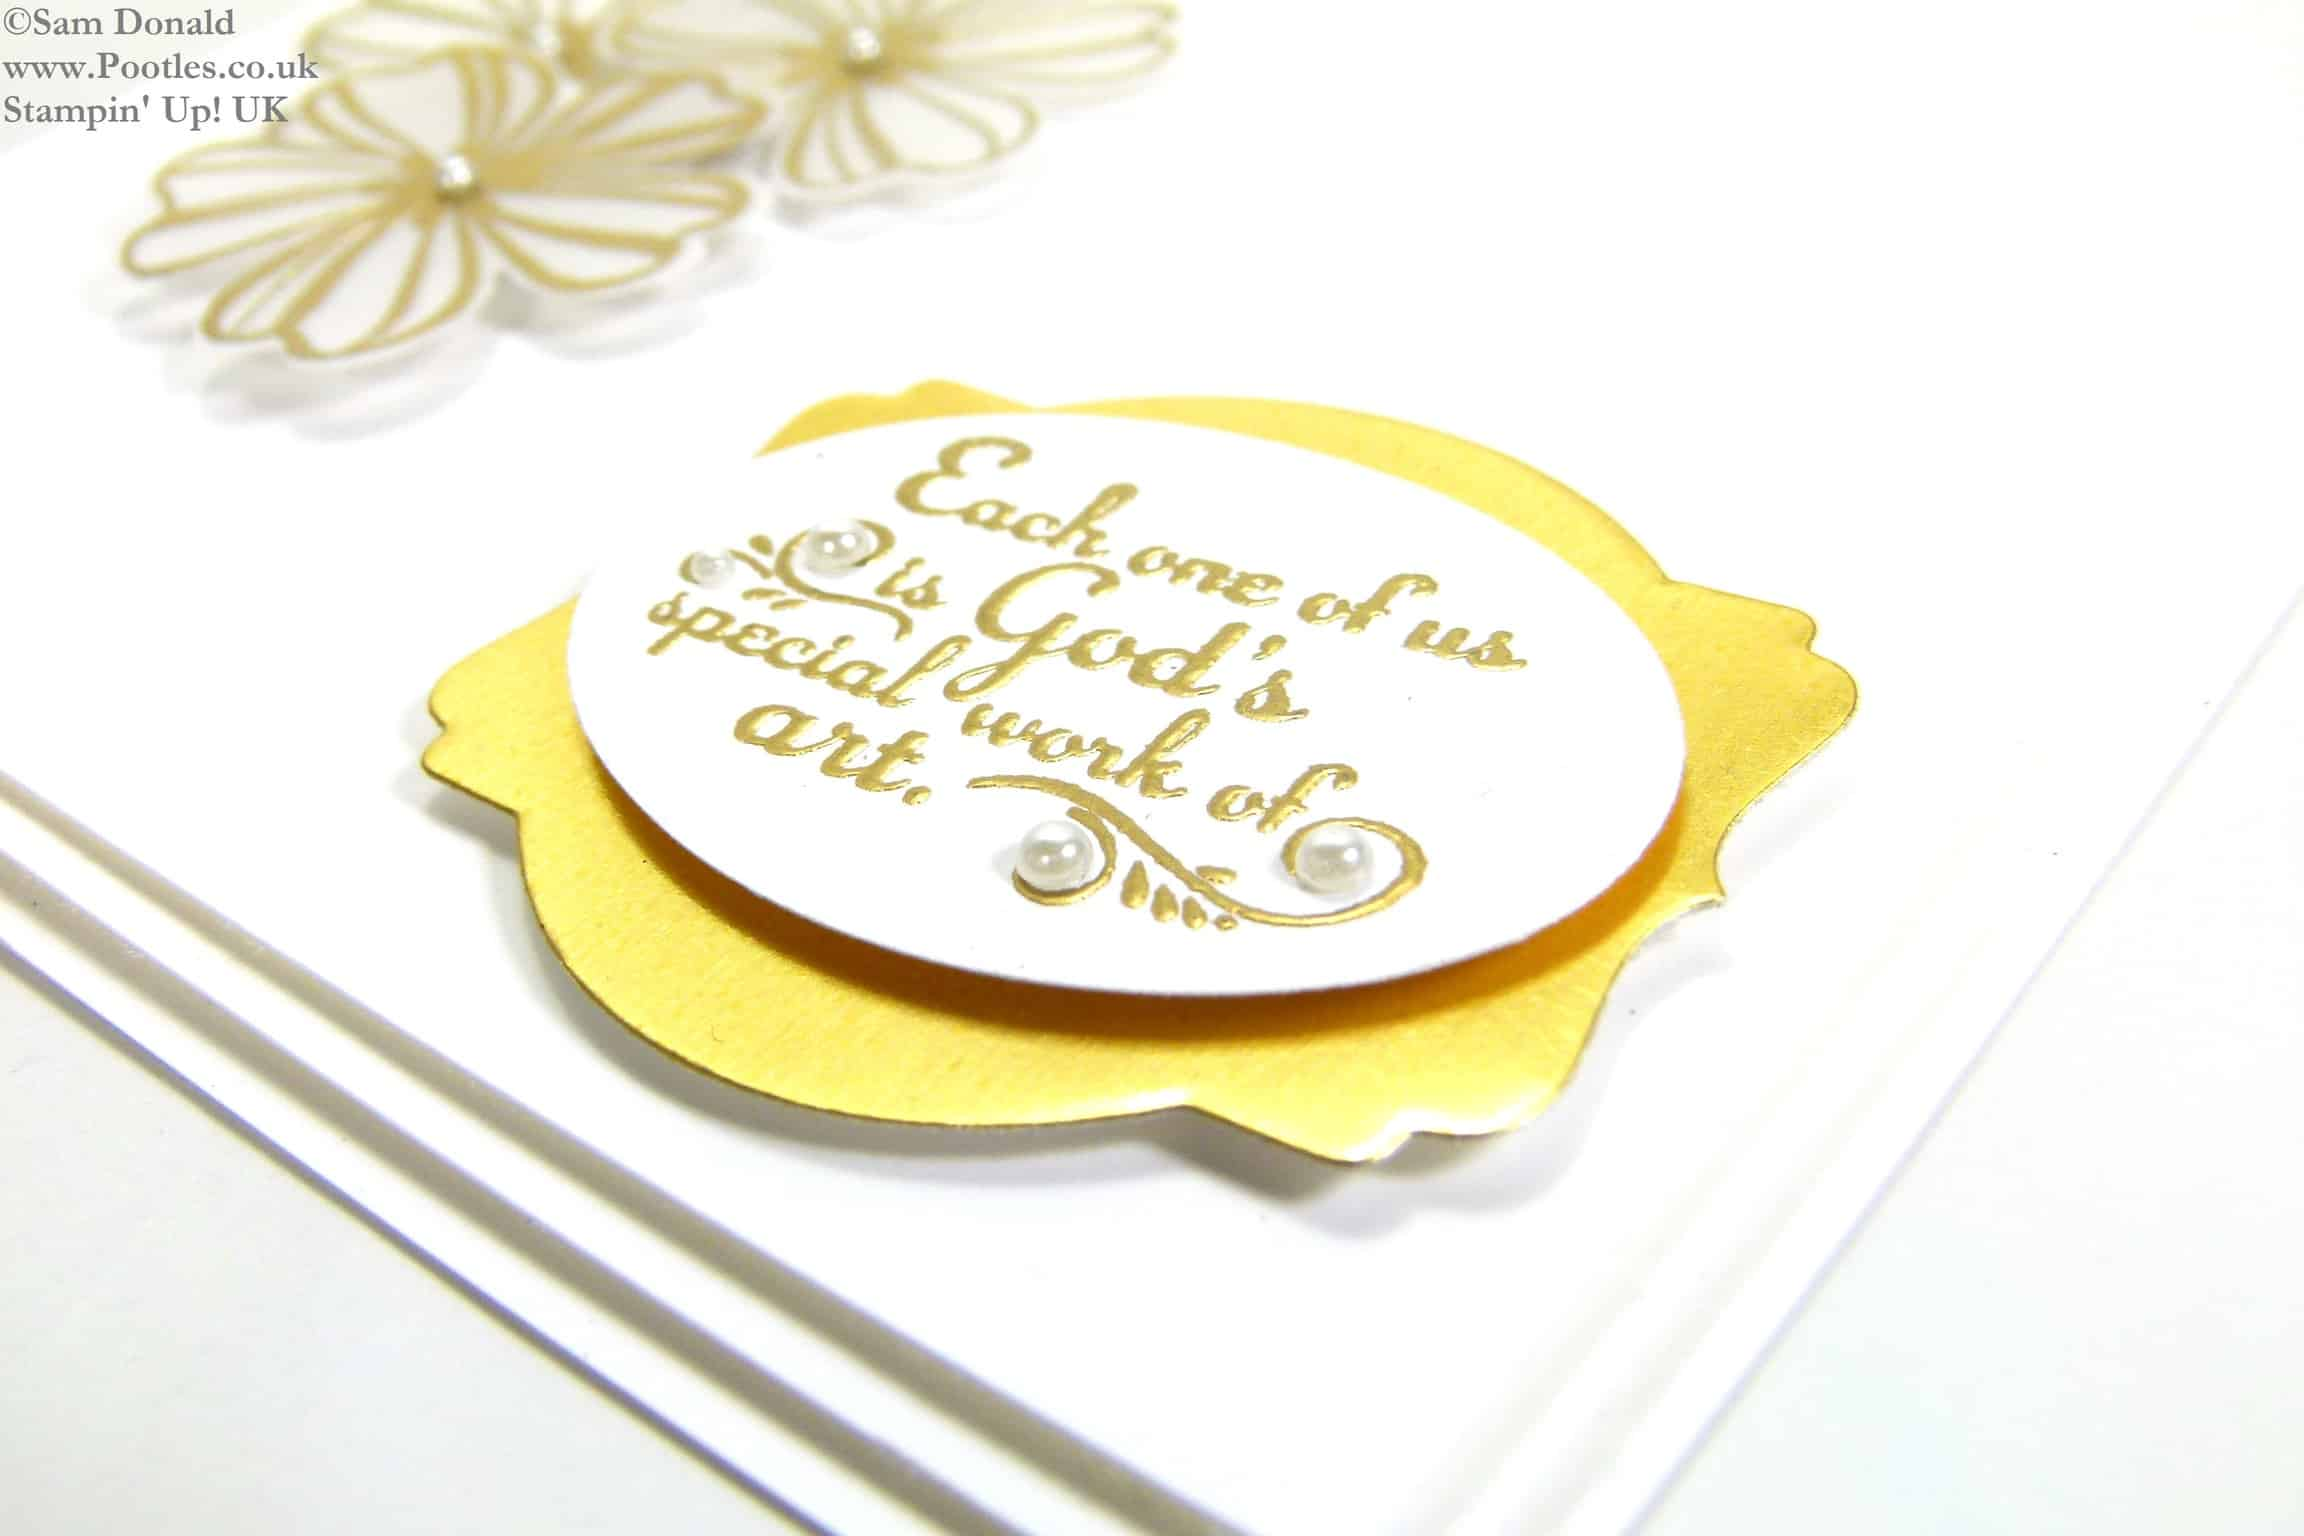 POOTLES Stampin Up UK Gold Heat Embossed Vellum Trust God